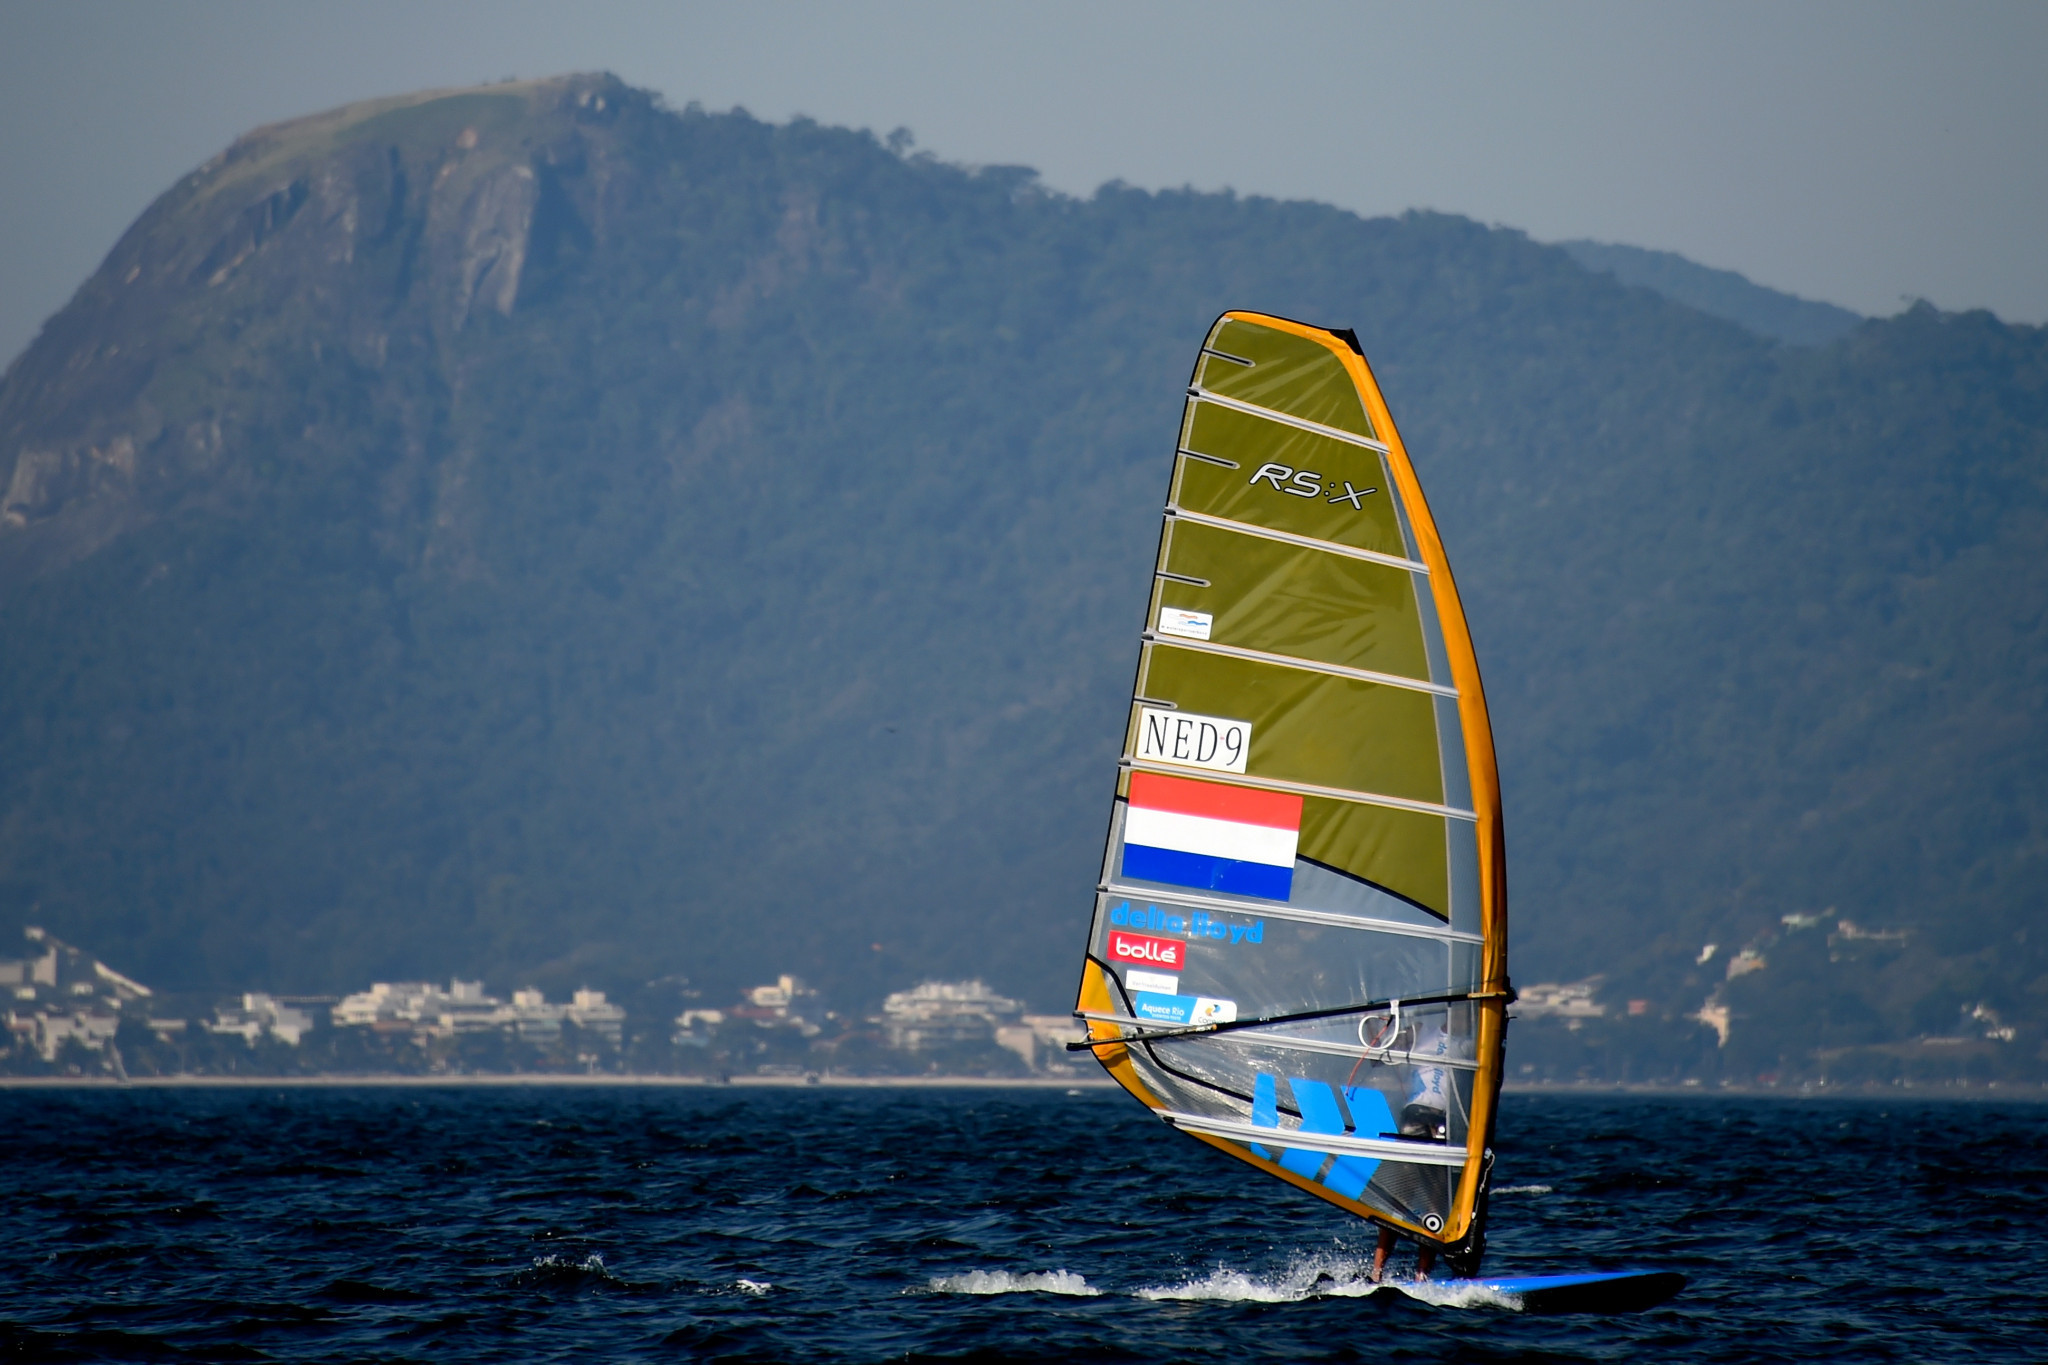 Dutch sailor Kiran Badloe won the men's event at the RS:X World Championships in Torbole ©Getty Images